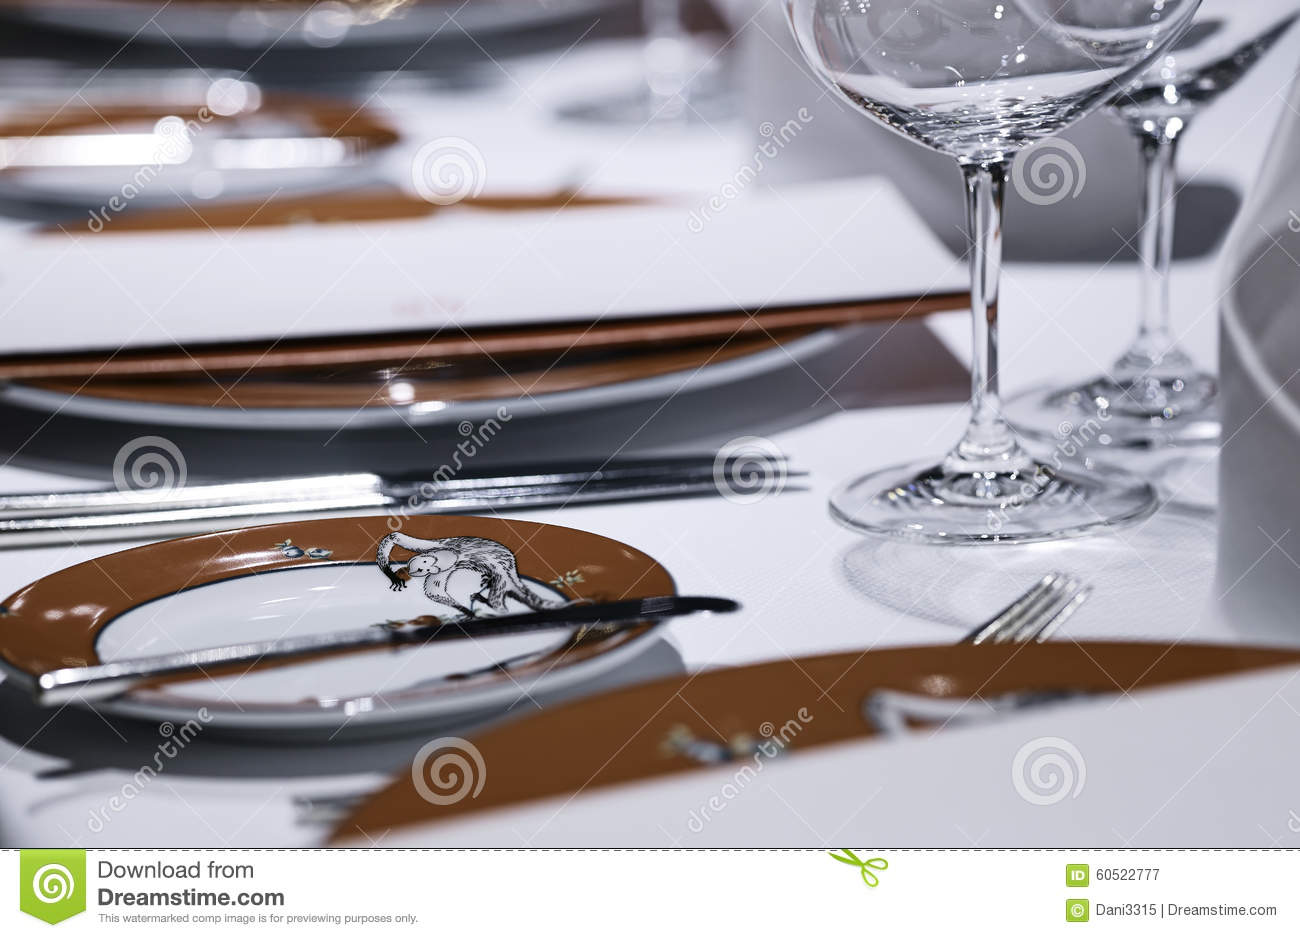 Formal Dining Table Set Up Stock Photo Image 60522777